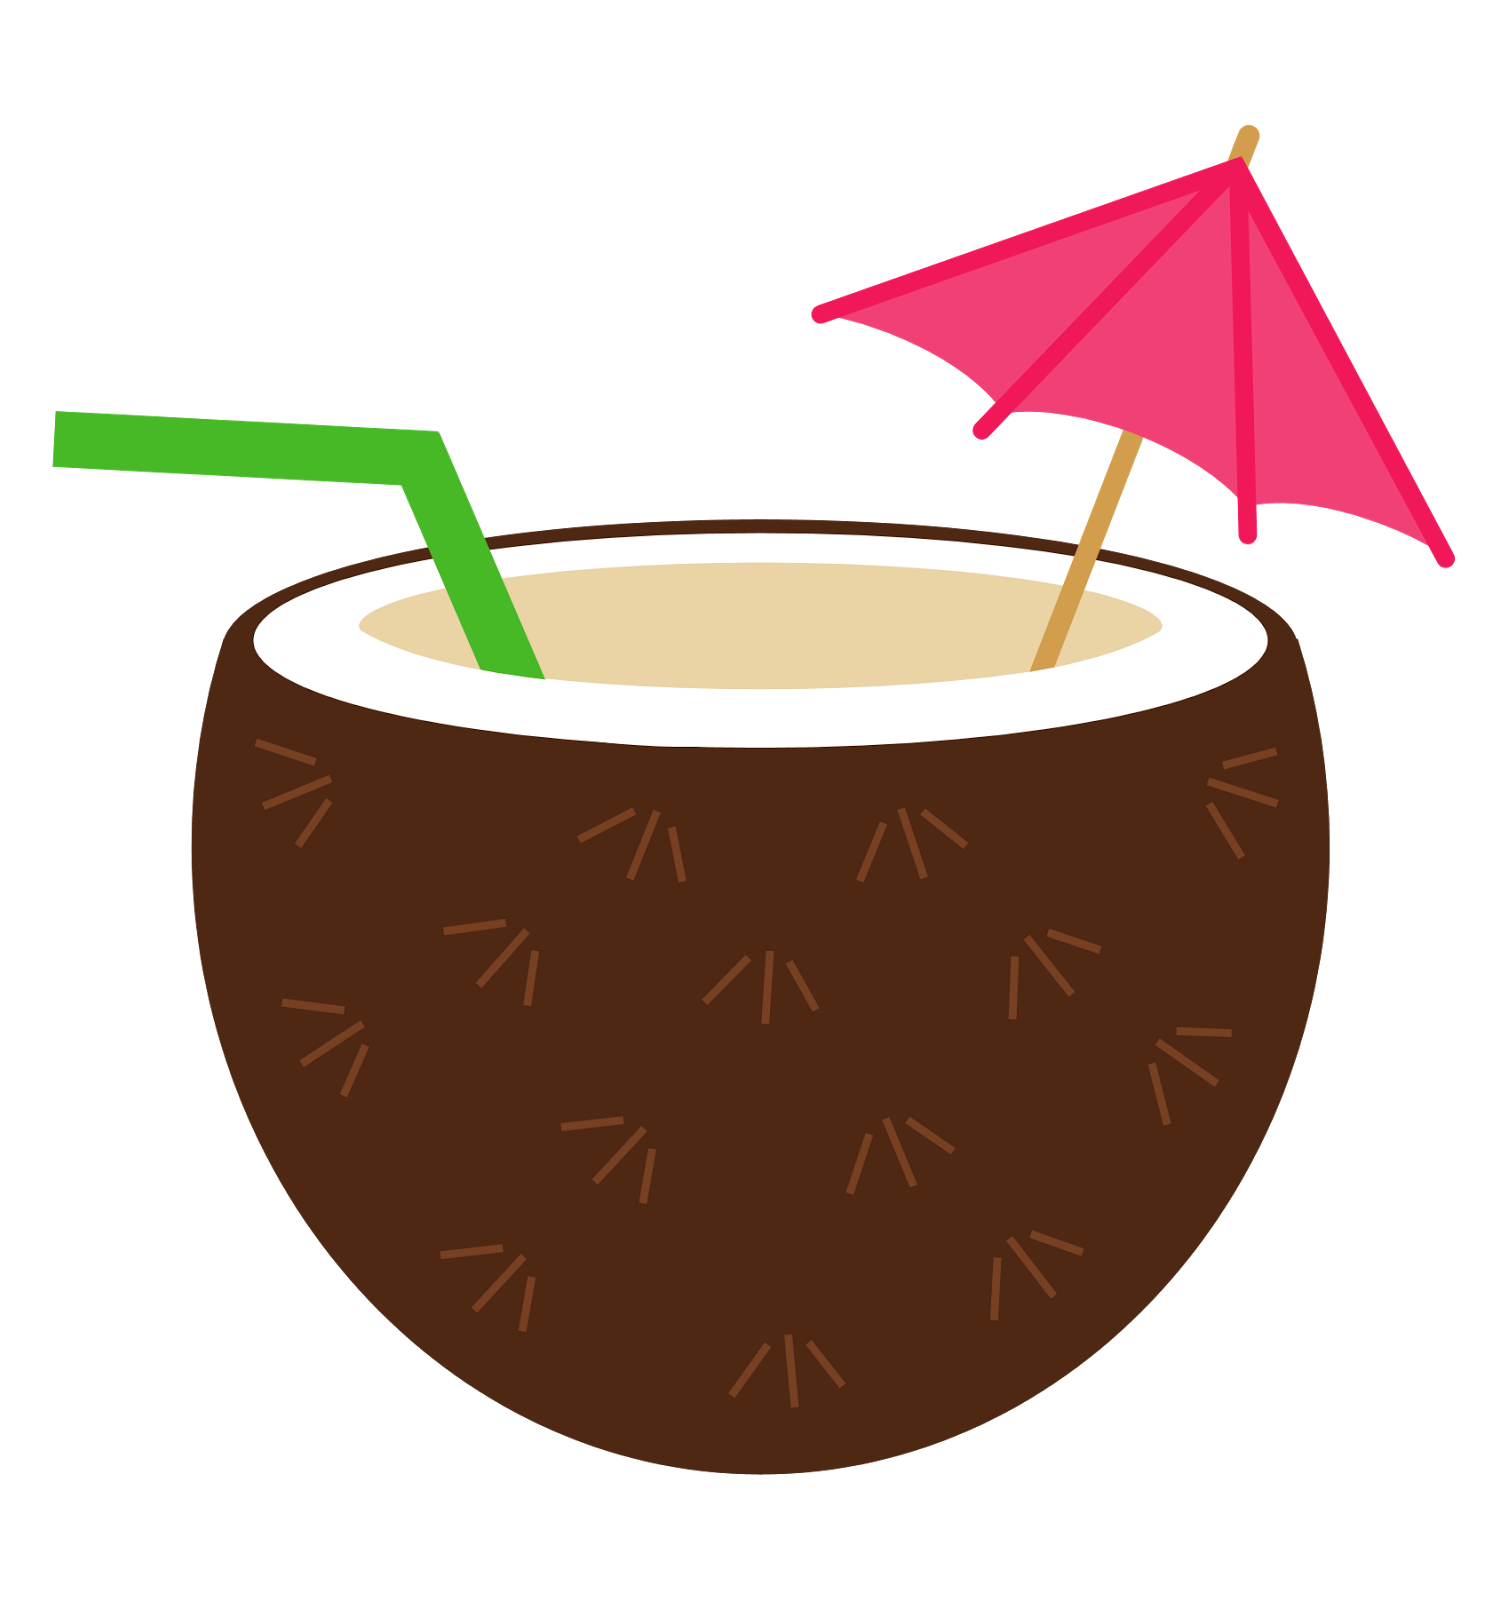 Hut clipart tropical #15